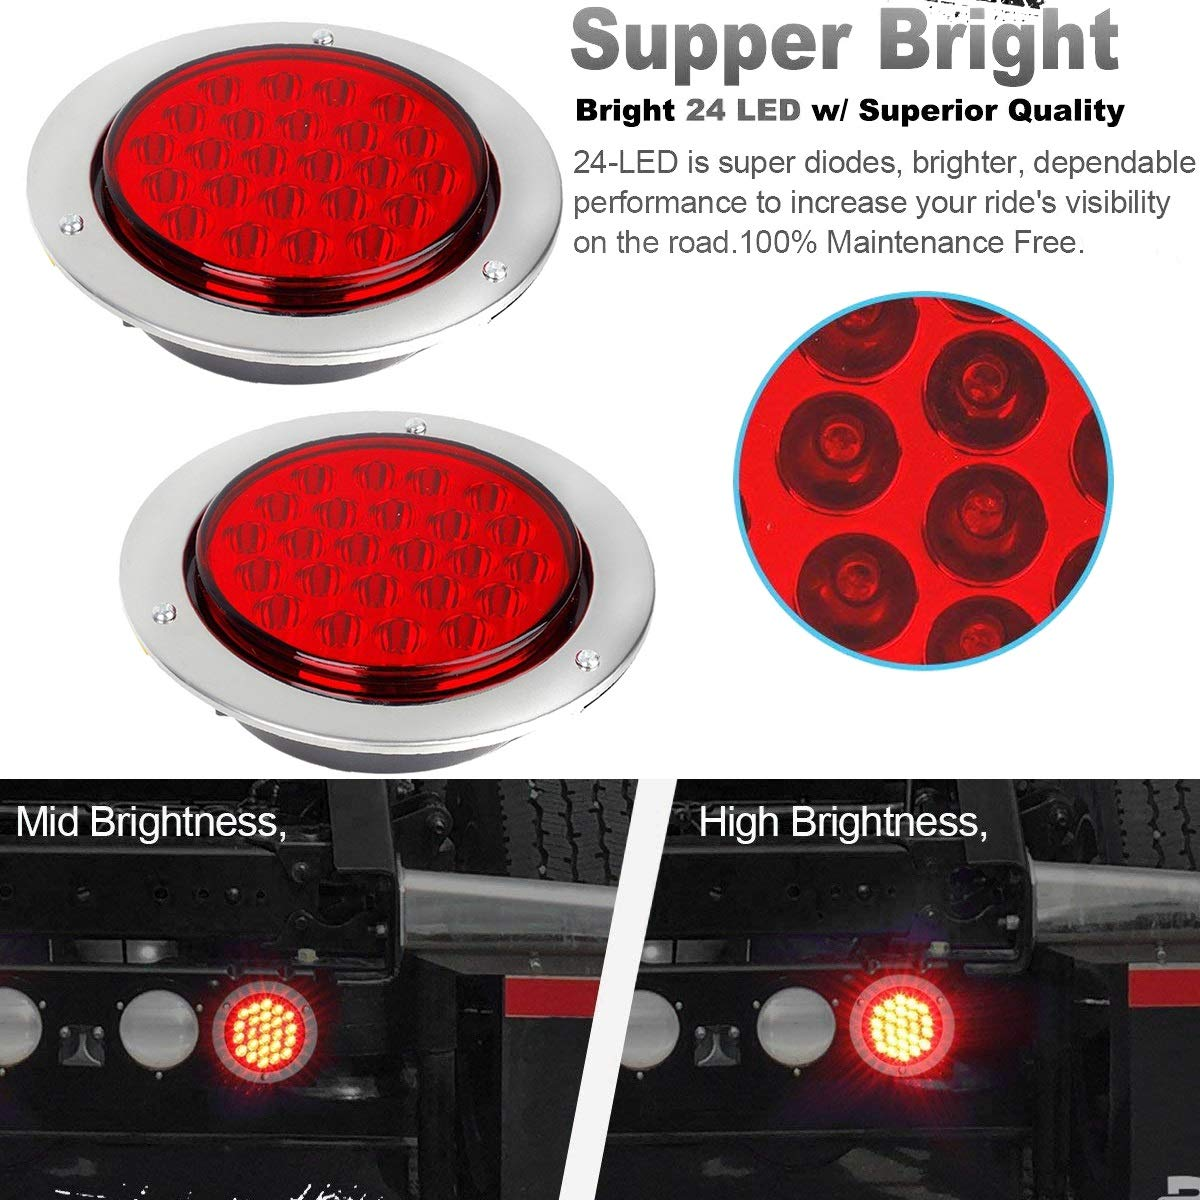 Fealay 2pcs 24-LED Red 4 Inch Round Tail Stop Turn Signal and Brake Marker Truck Trailer RV 2pcs